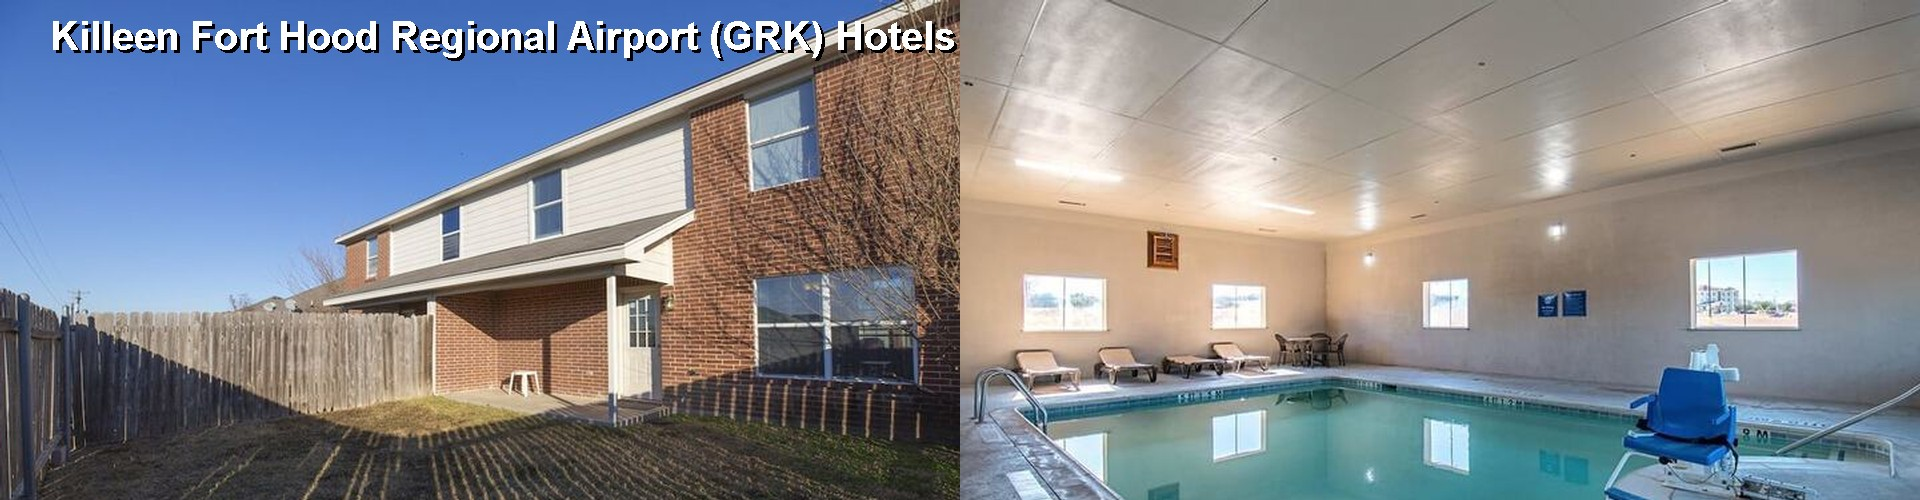 5 Best Hotels Near Killeen Fort Hood Regional Airport Grk